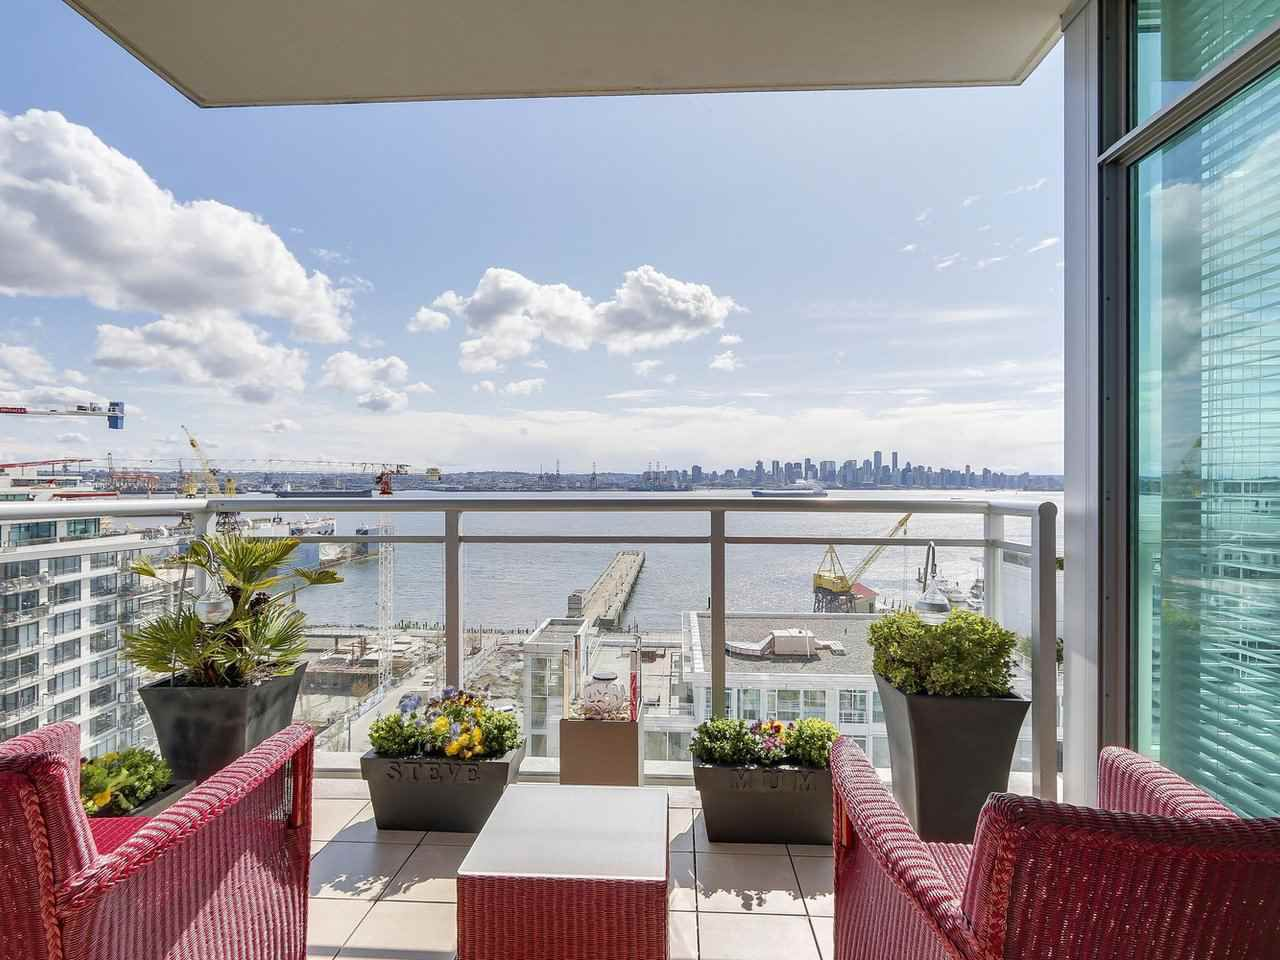 """Main Photo: 1402 138 E ESPLANADE in North Vancouver: Lower Lonsdale Condo for sale in """"PREMIER AT THE PIER"""" : MLS®# R2161323"""